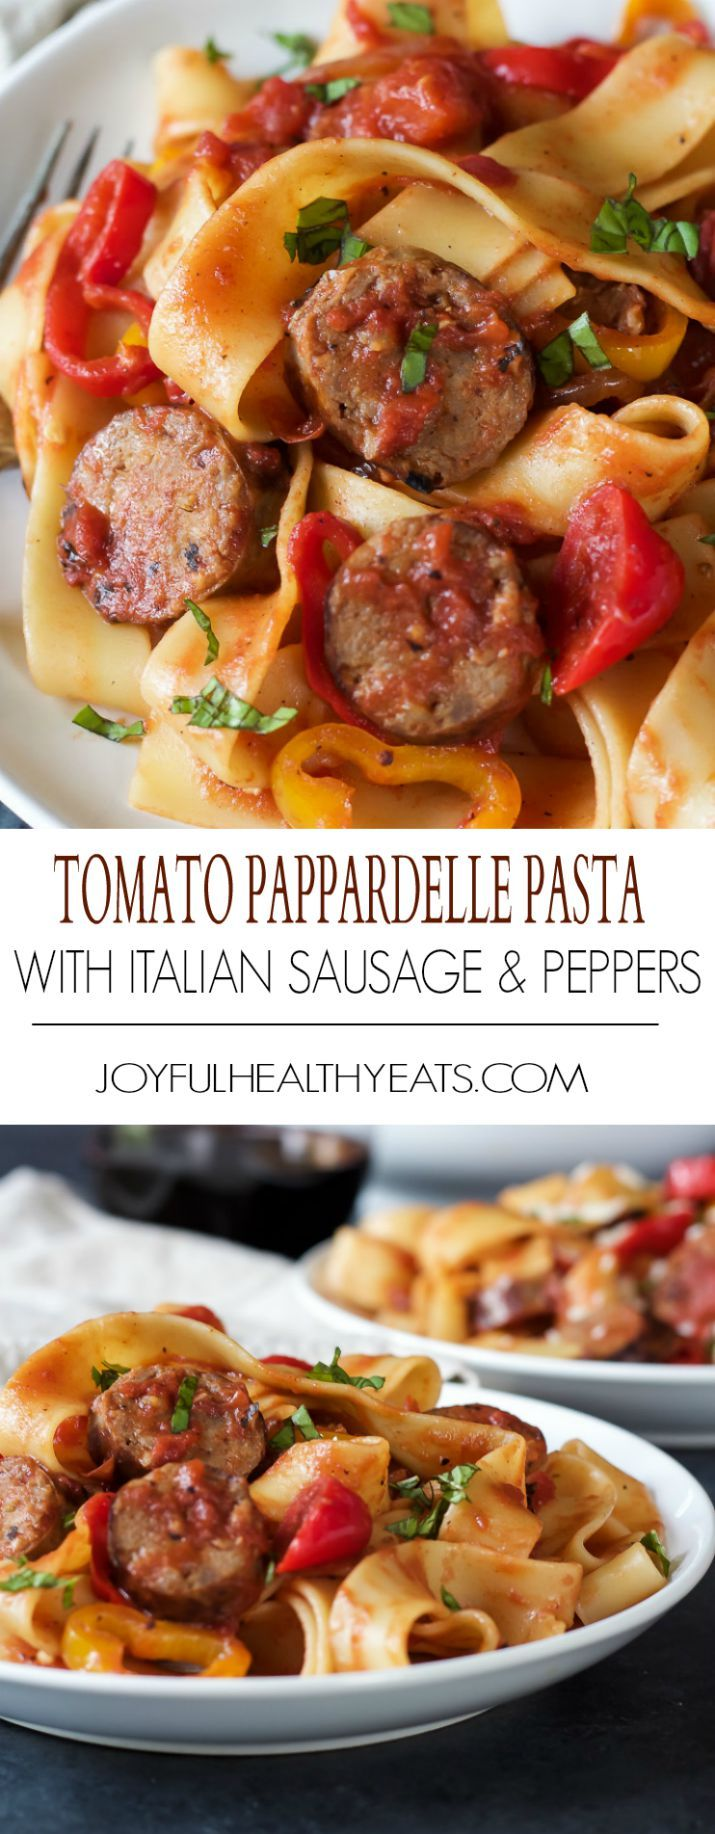 392 best delicious eats images on pinterest kitchens petit fours tomato pappardelle pasta with italian sausage and peppers forumfinder Image collections